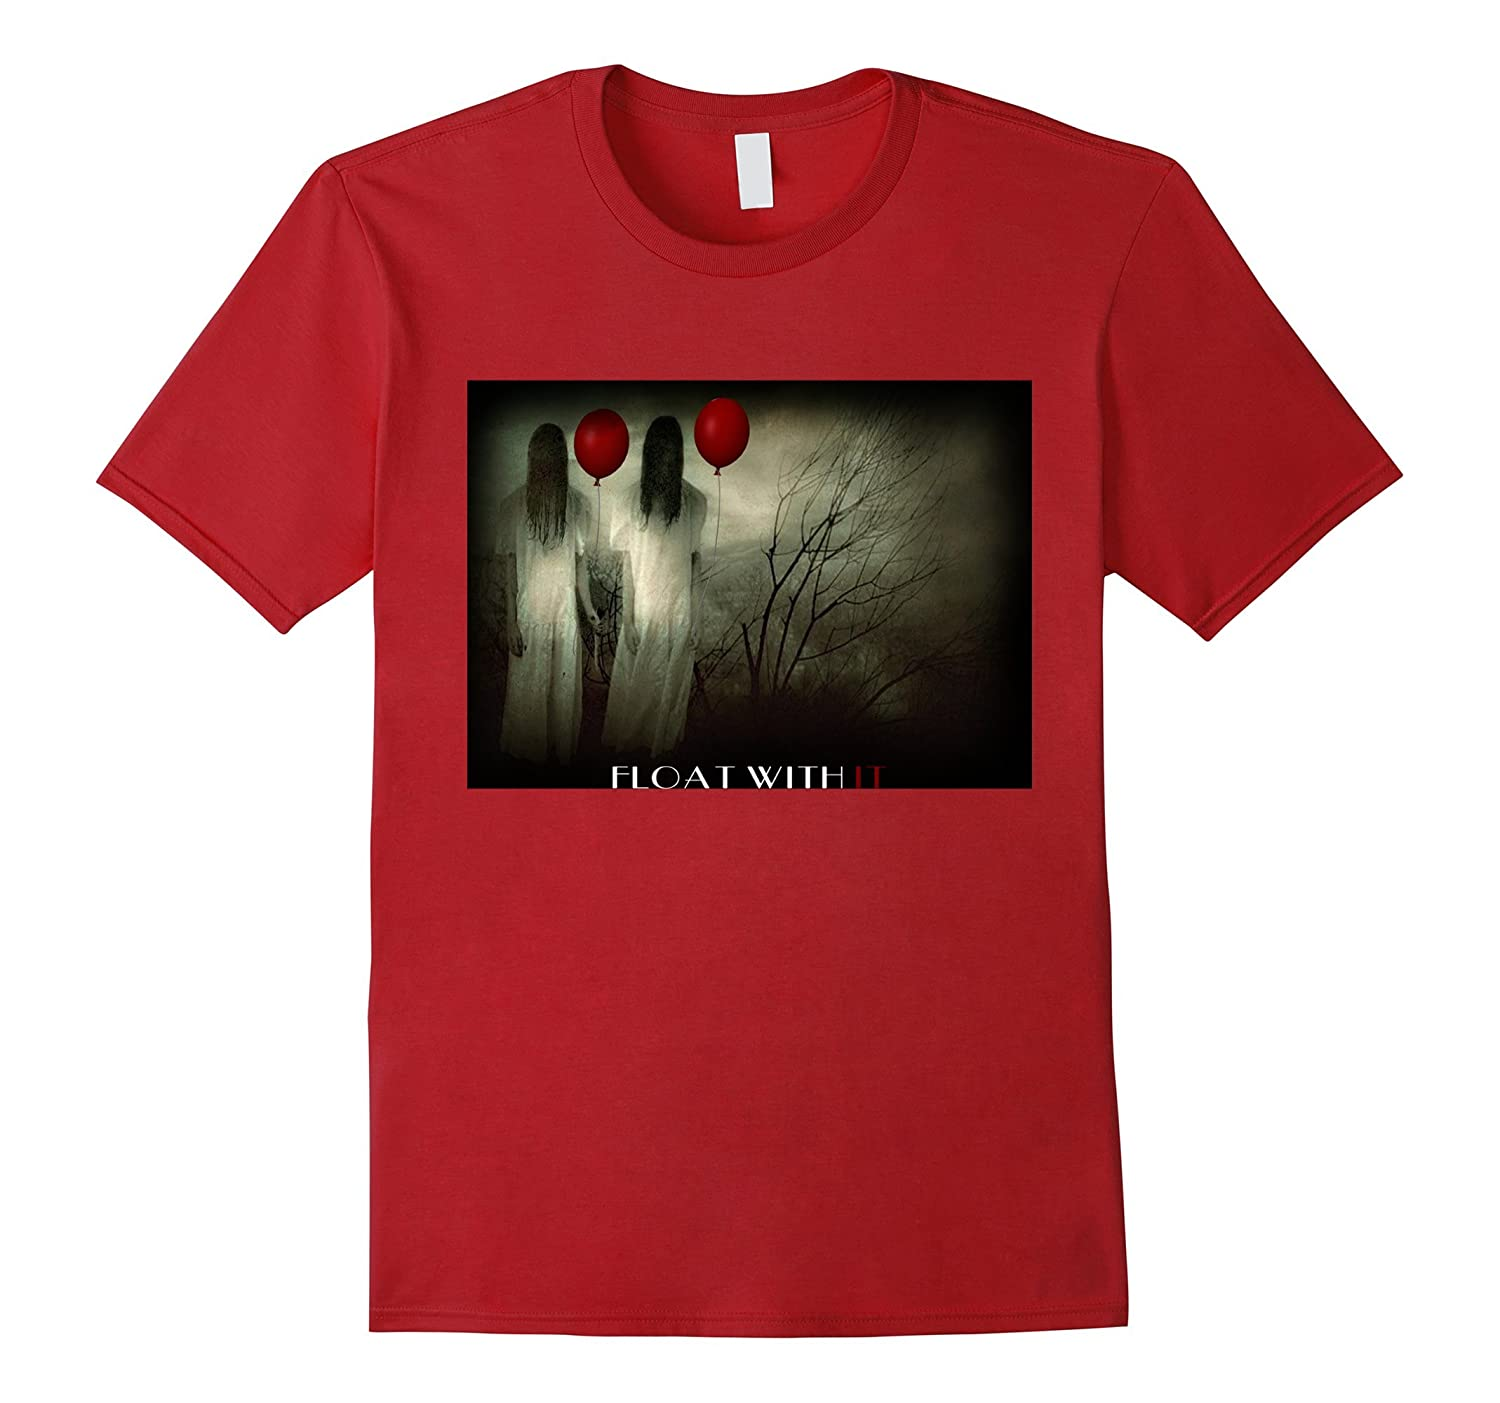 2017 red Balloon Horror Halloween T-shirt-TJ